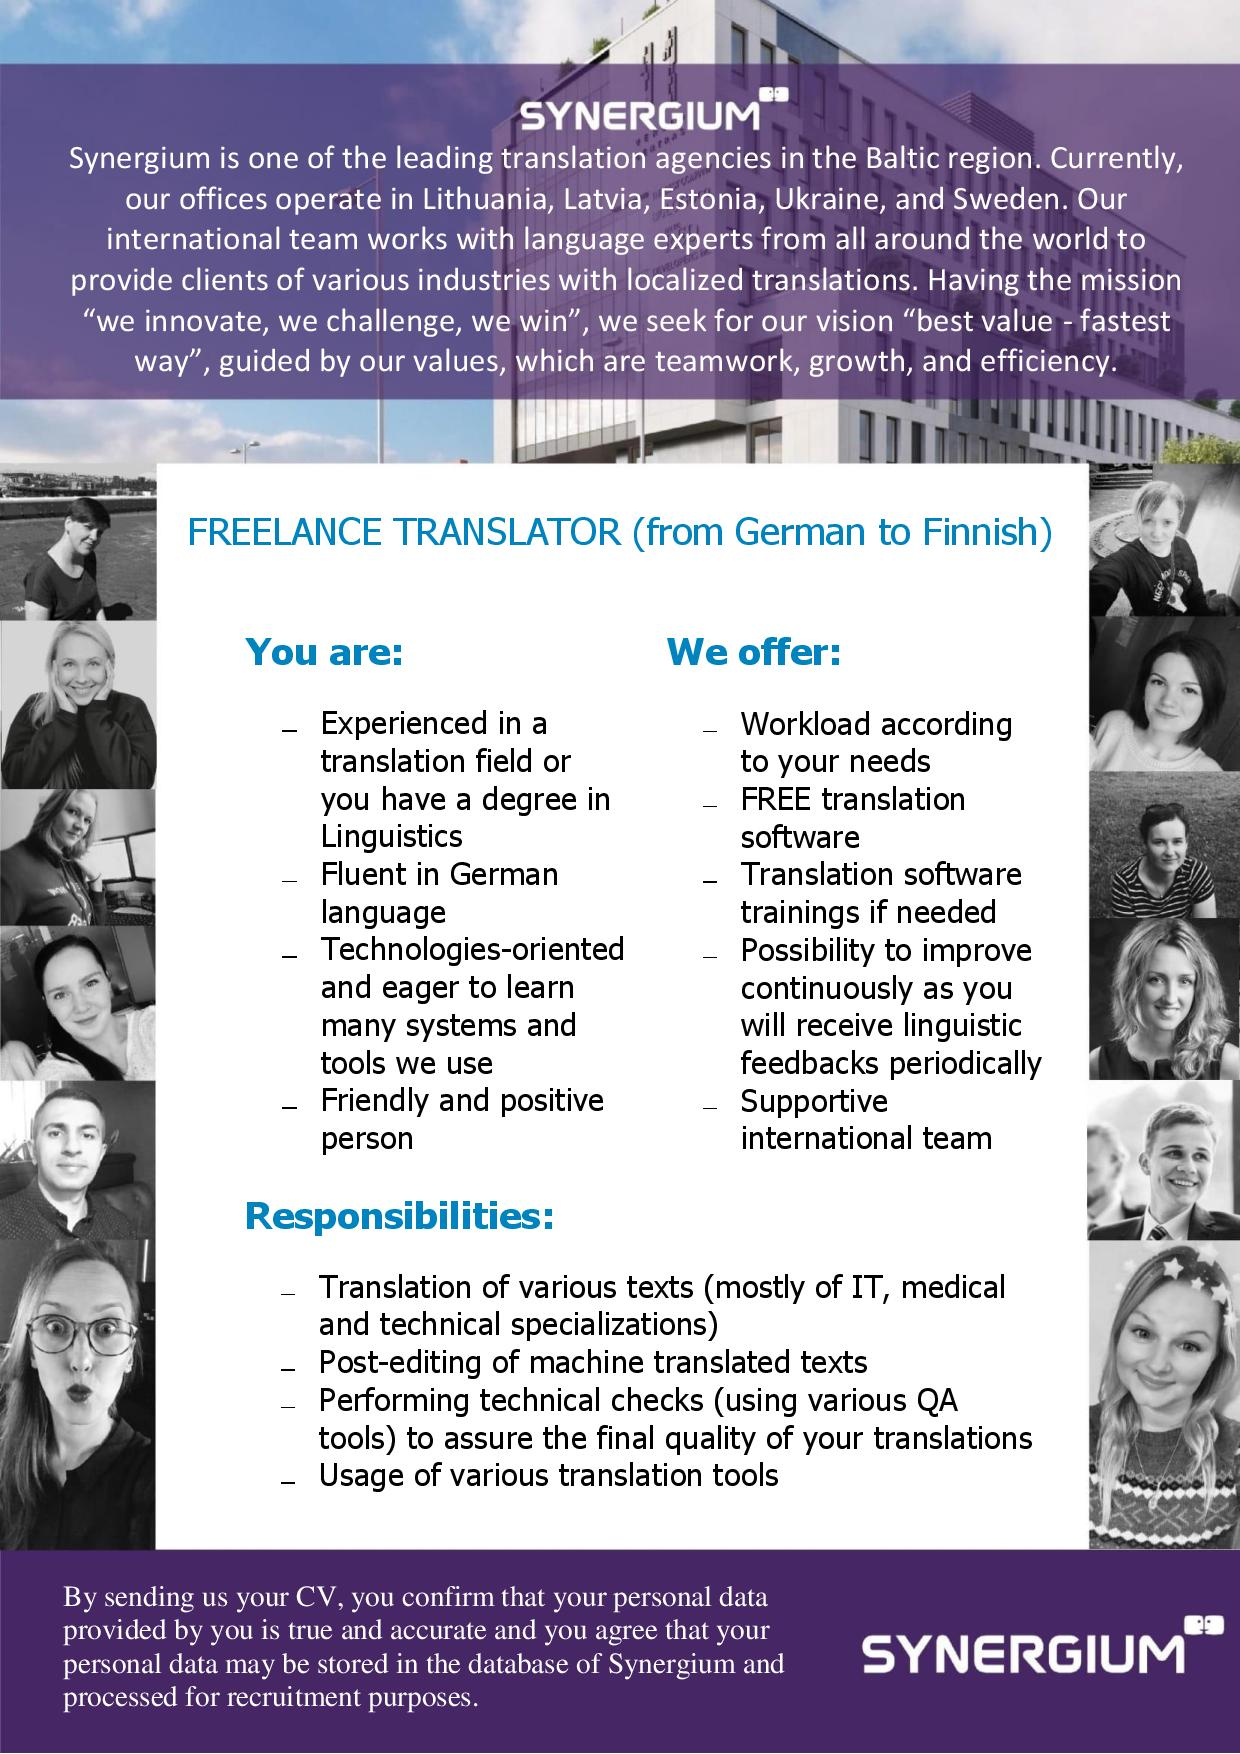 freelance translator from german to finnish job advertisement synergium